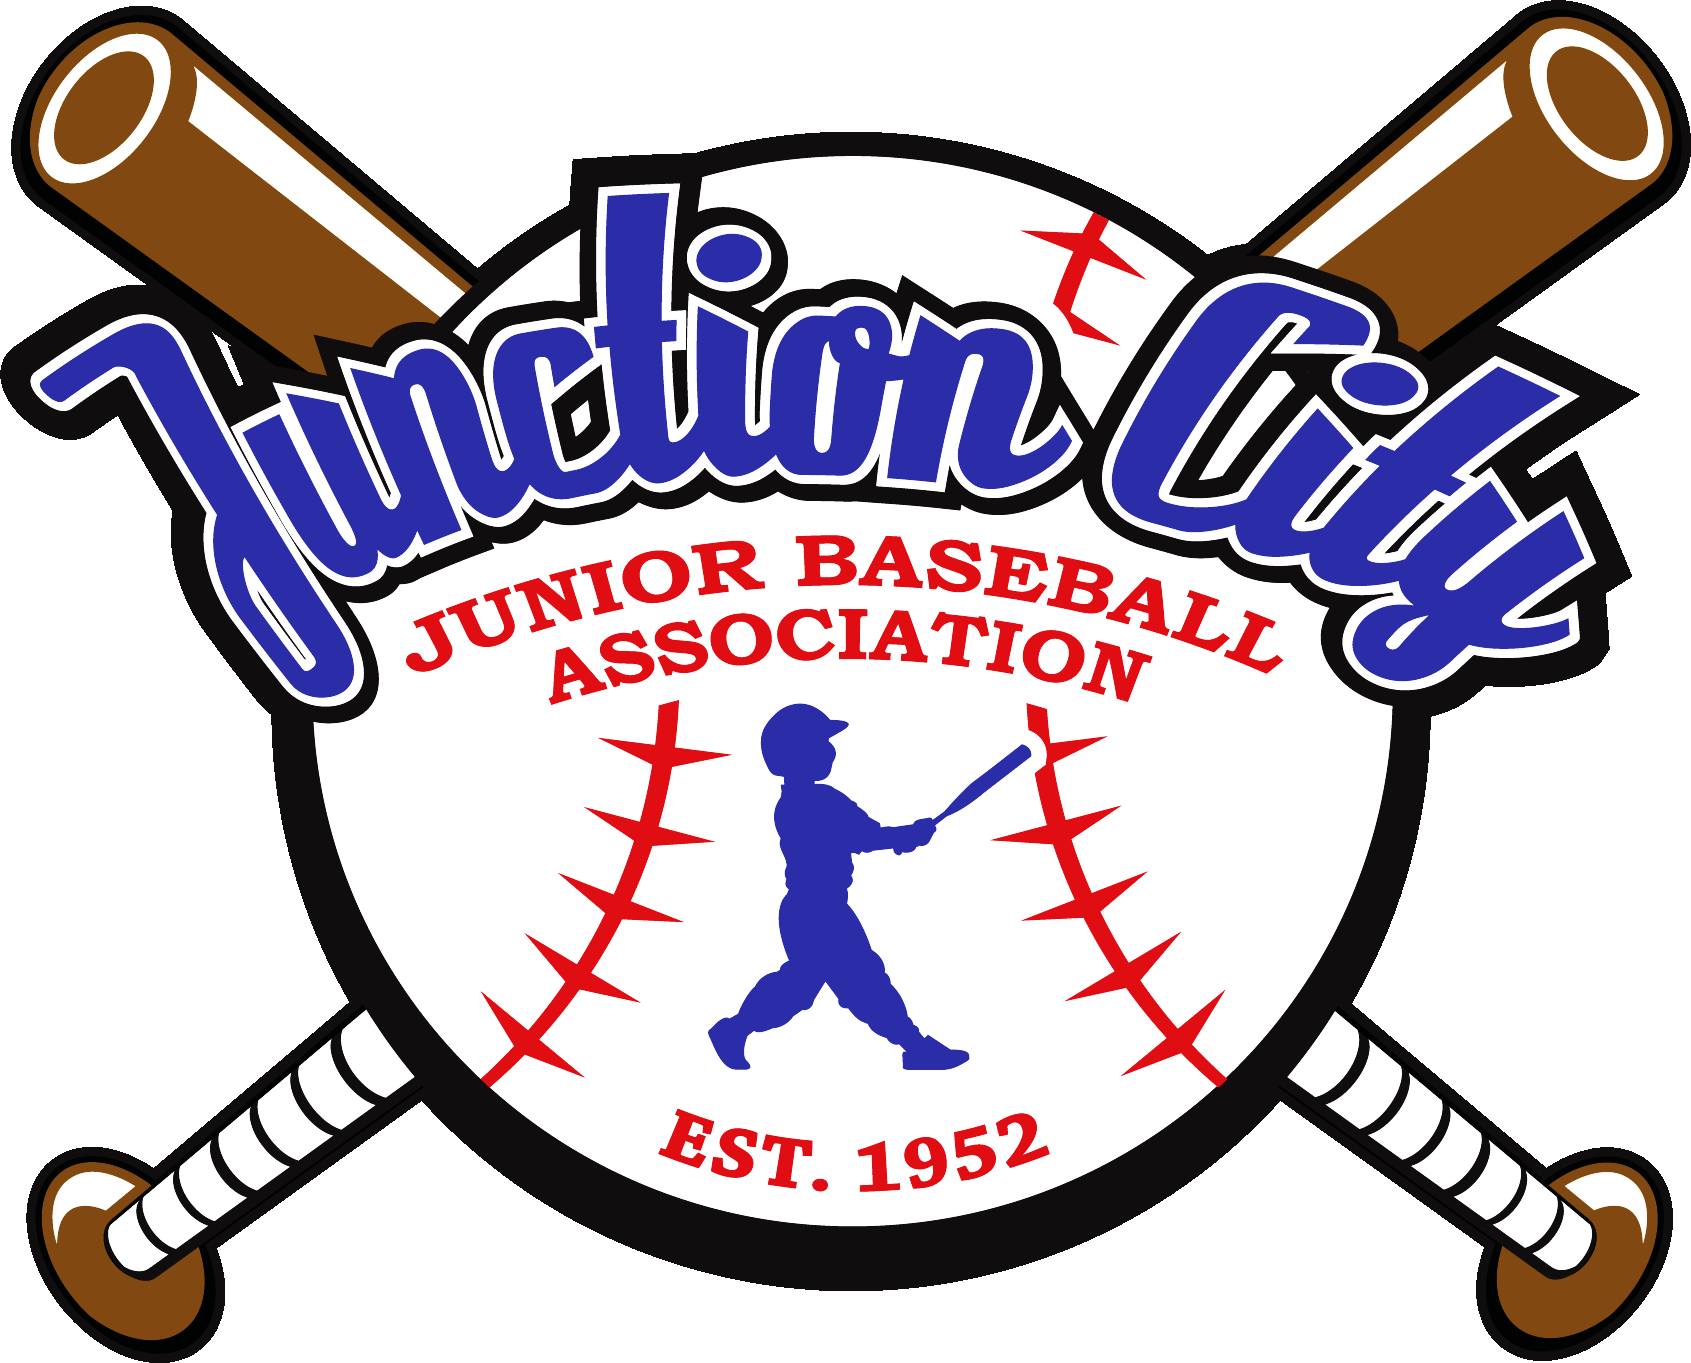 Junction City Junior Baseball Association